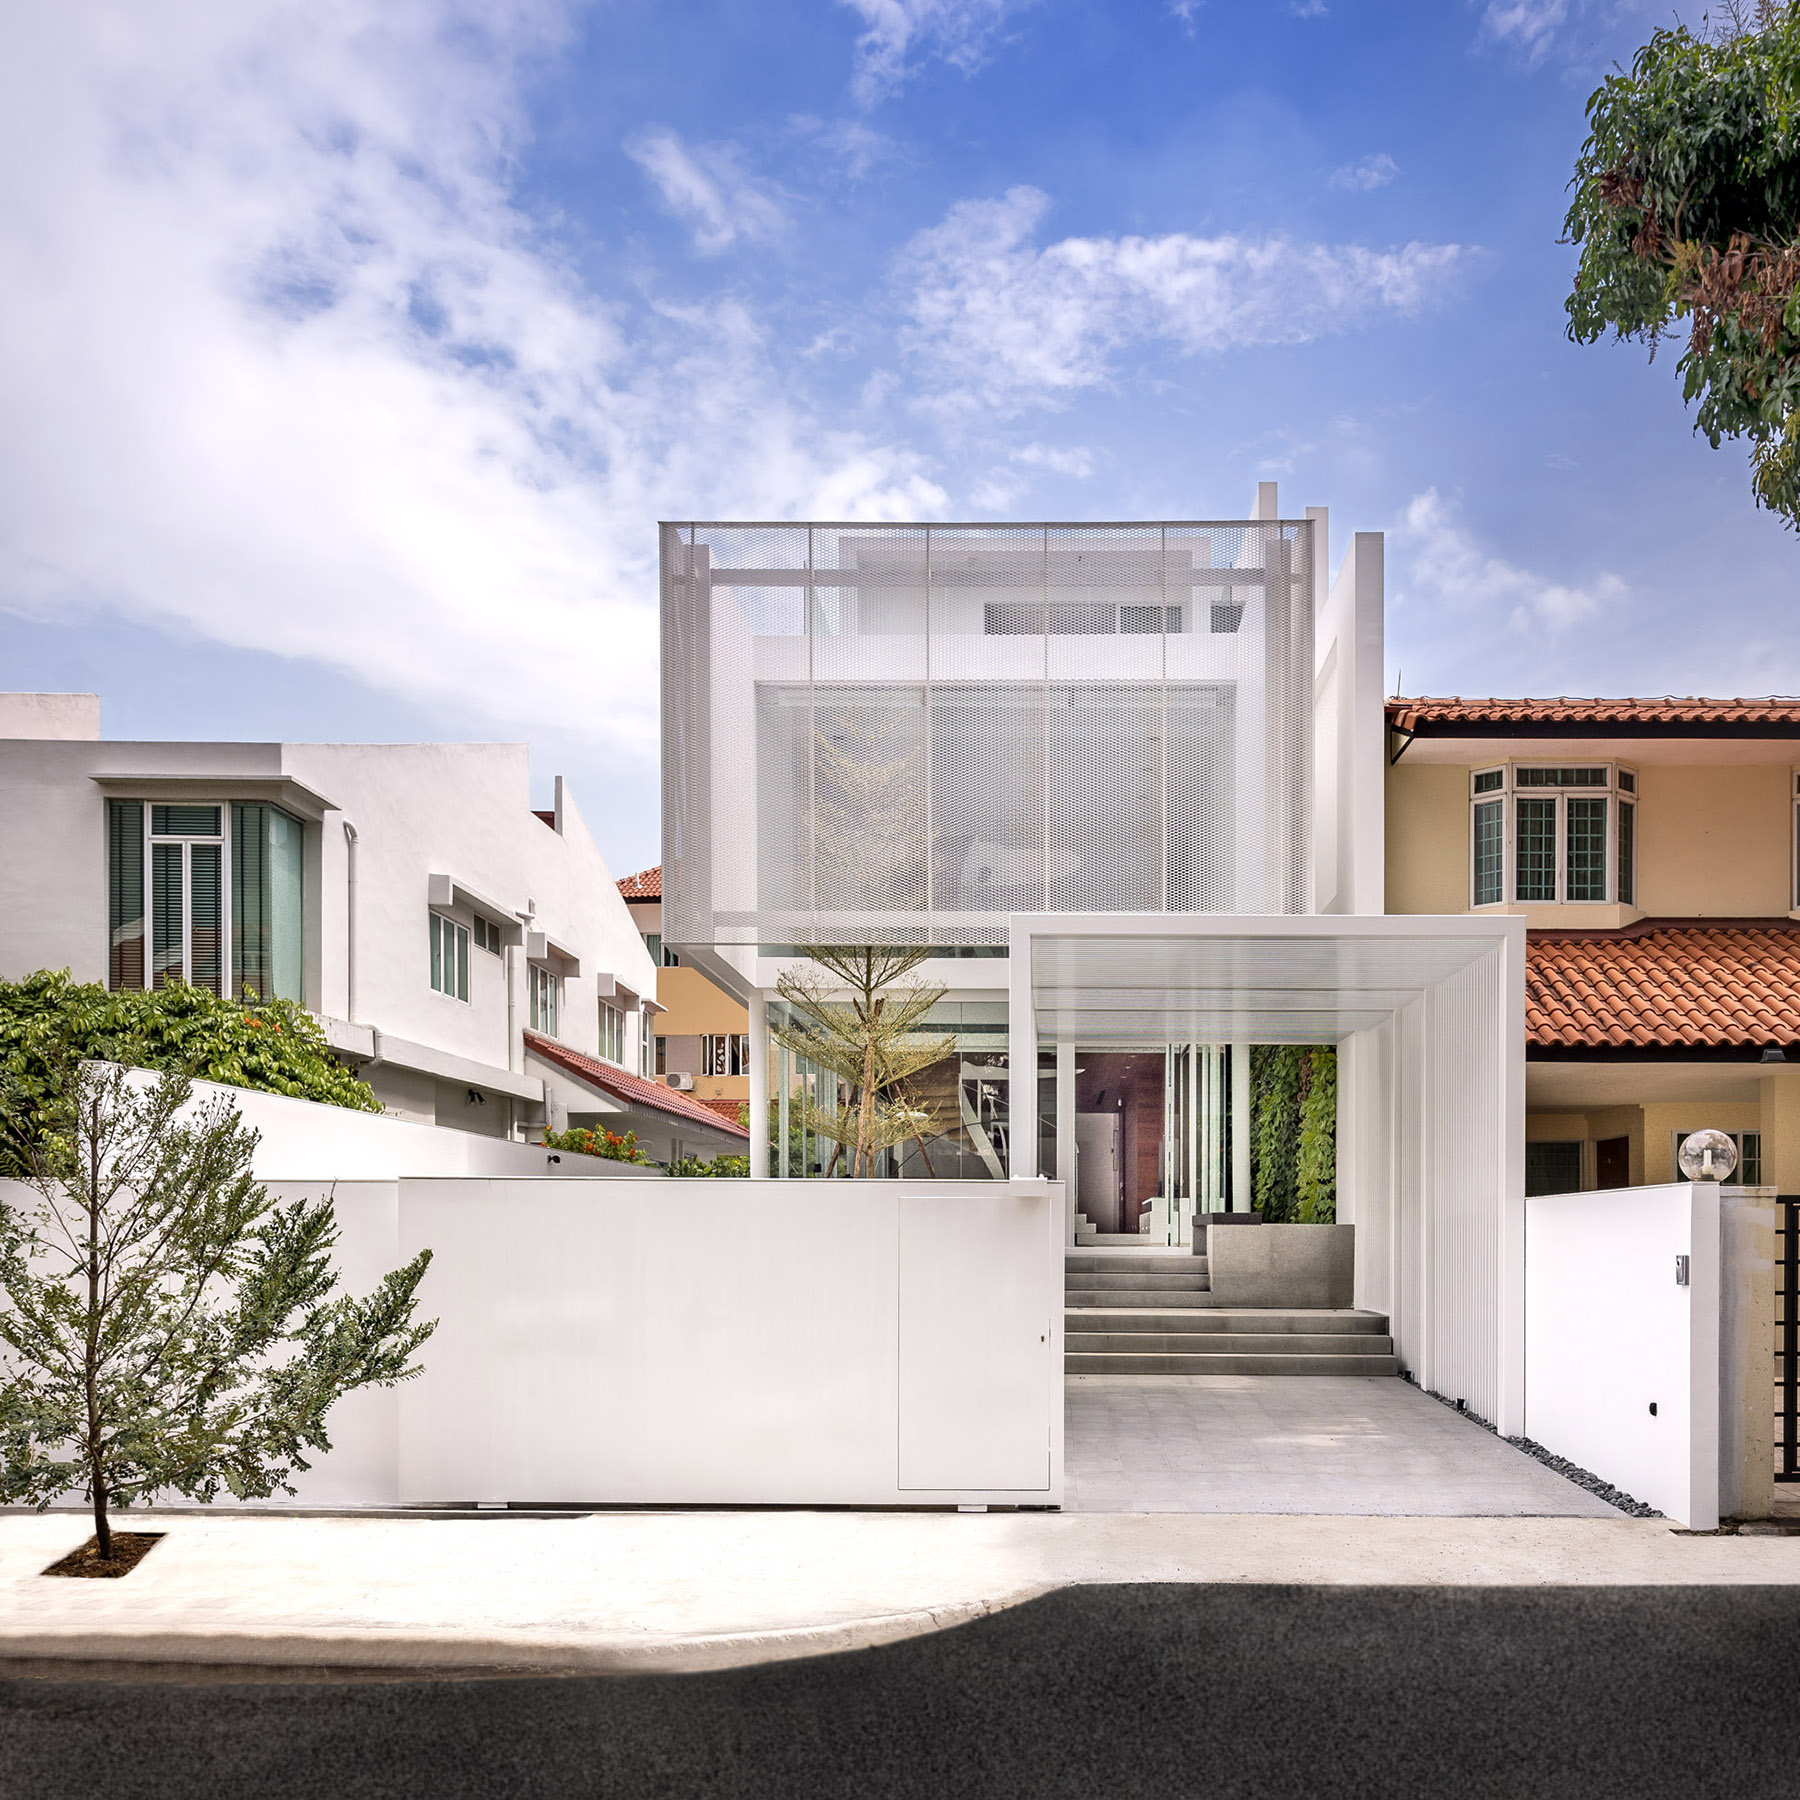 The Greja House Single Family Residential House by Park + Associates Pte Ltd